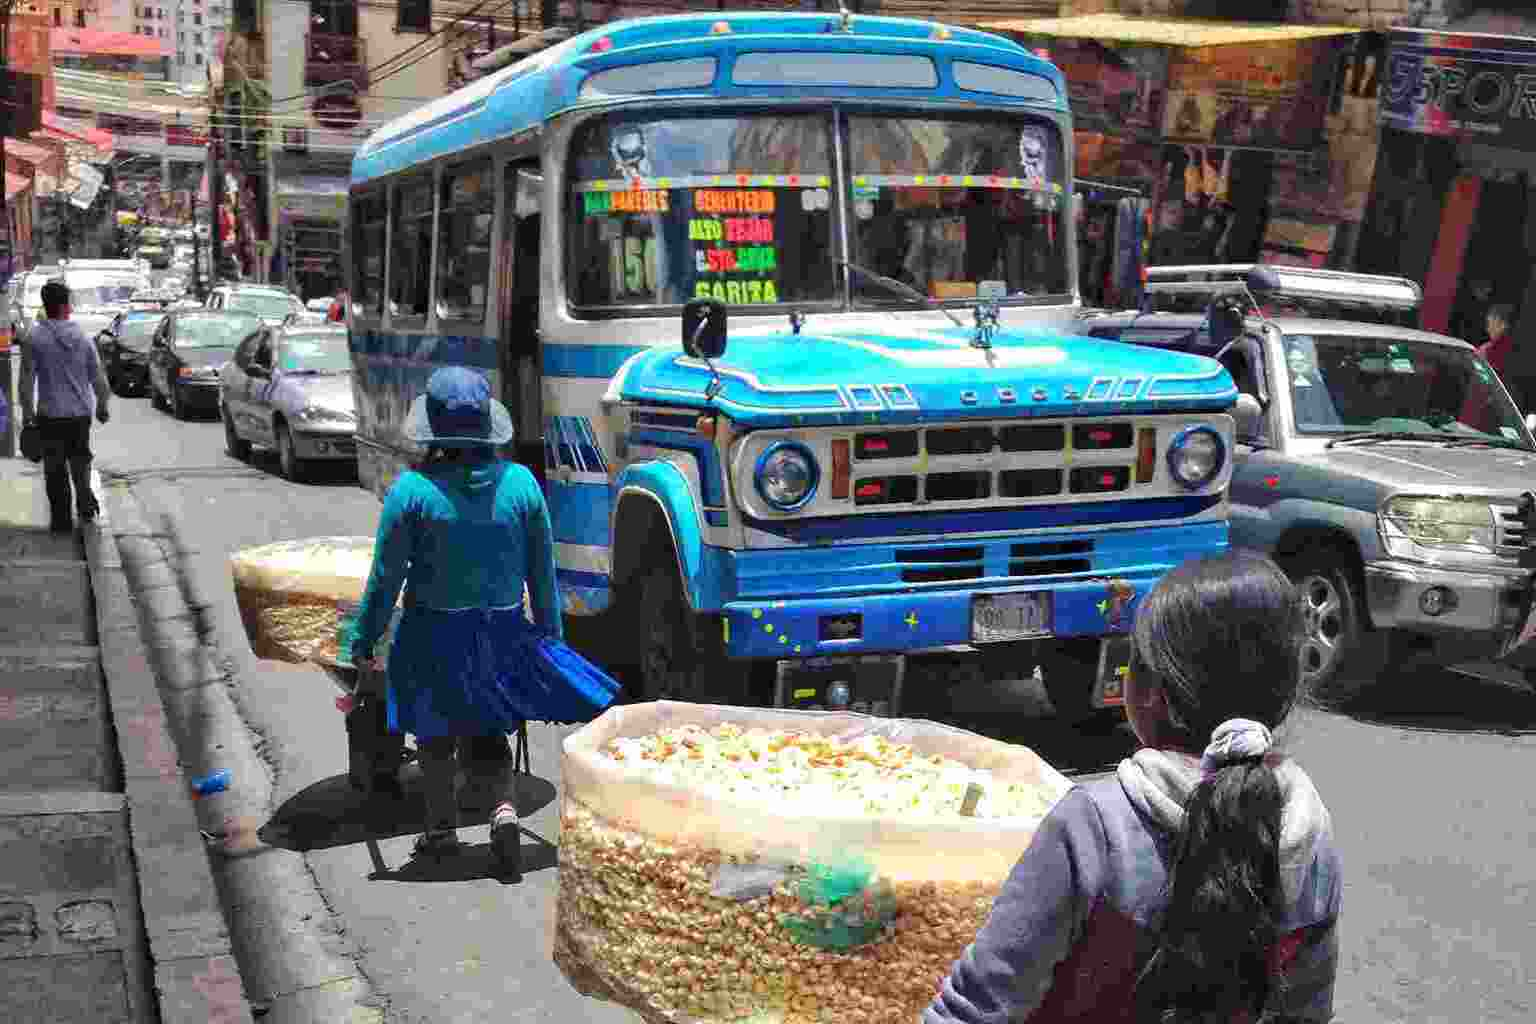 10 Interesting Facts About Bolivia The Whole World Or Nothing